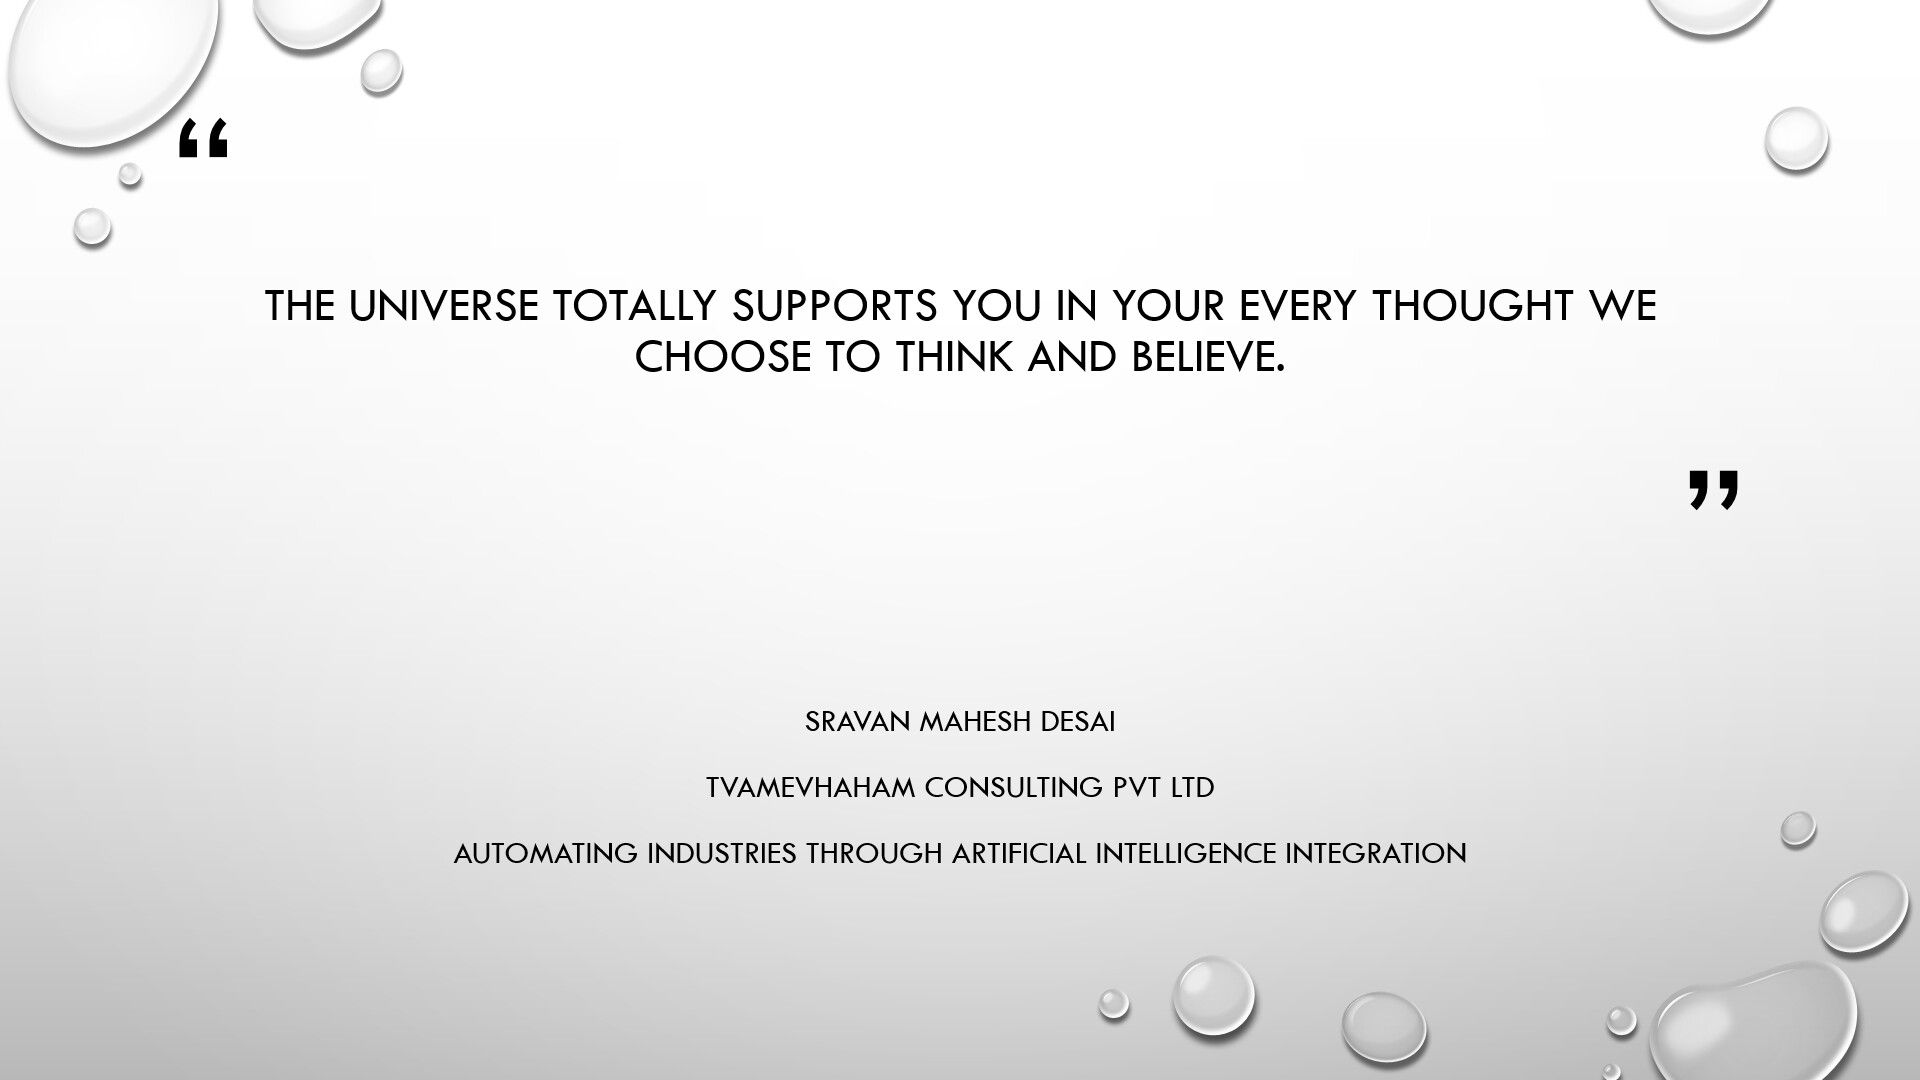 The universe totally supports you in your every thought we choose to think and believe.